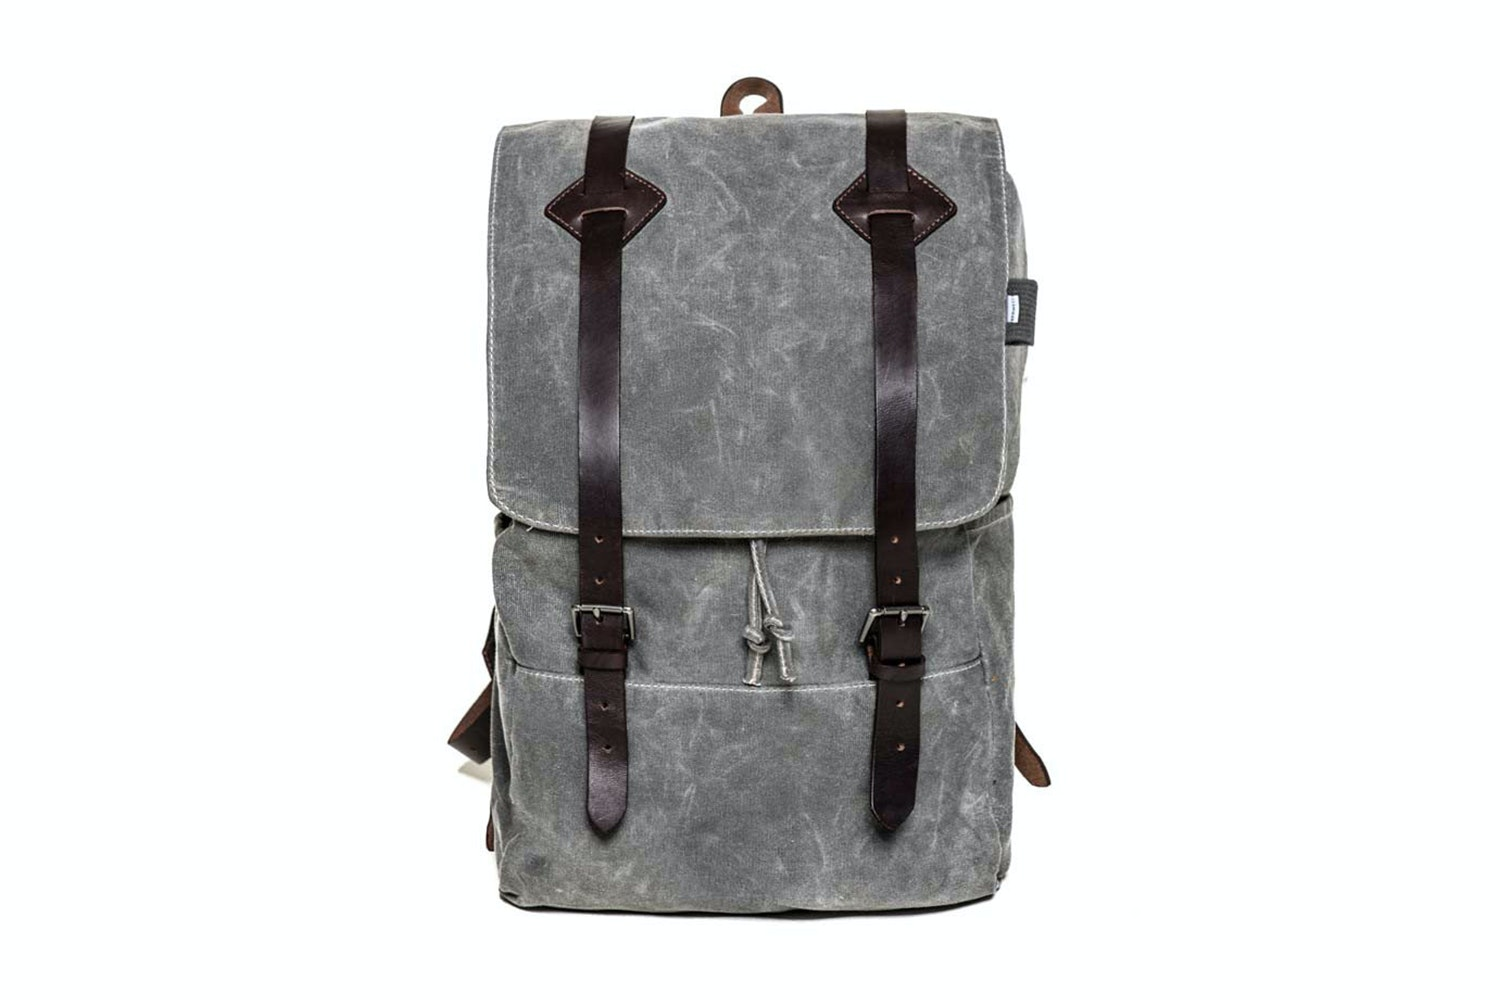 Backpack - Charcoal (+ $64)